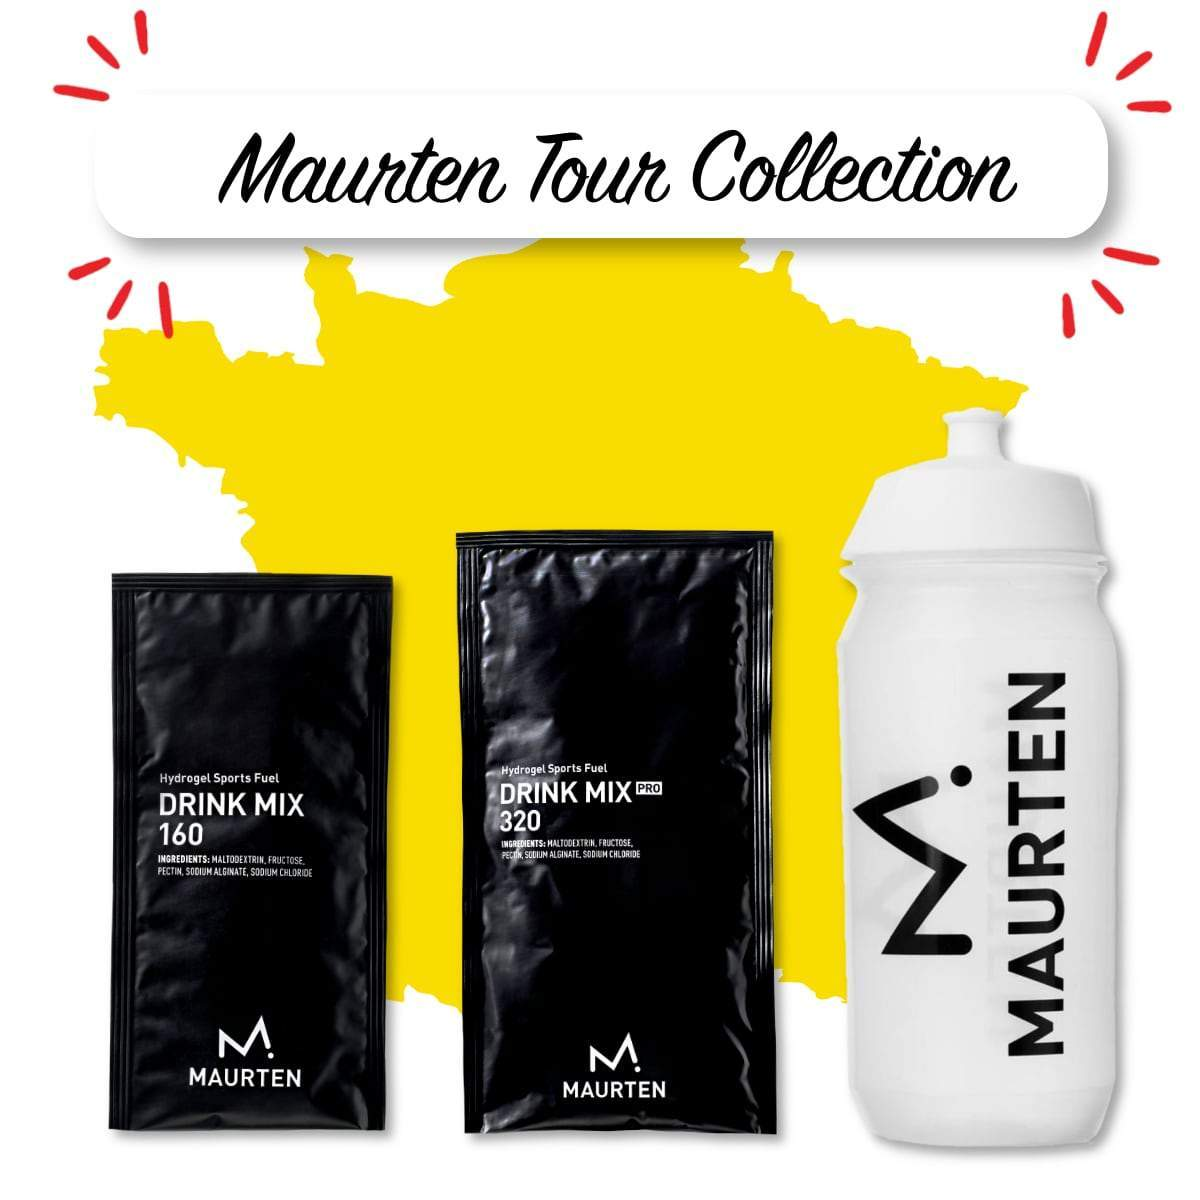 Maurten Tour Collection - Misc.